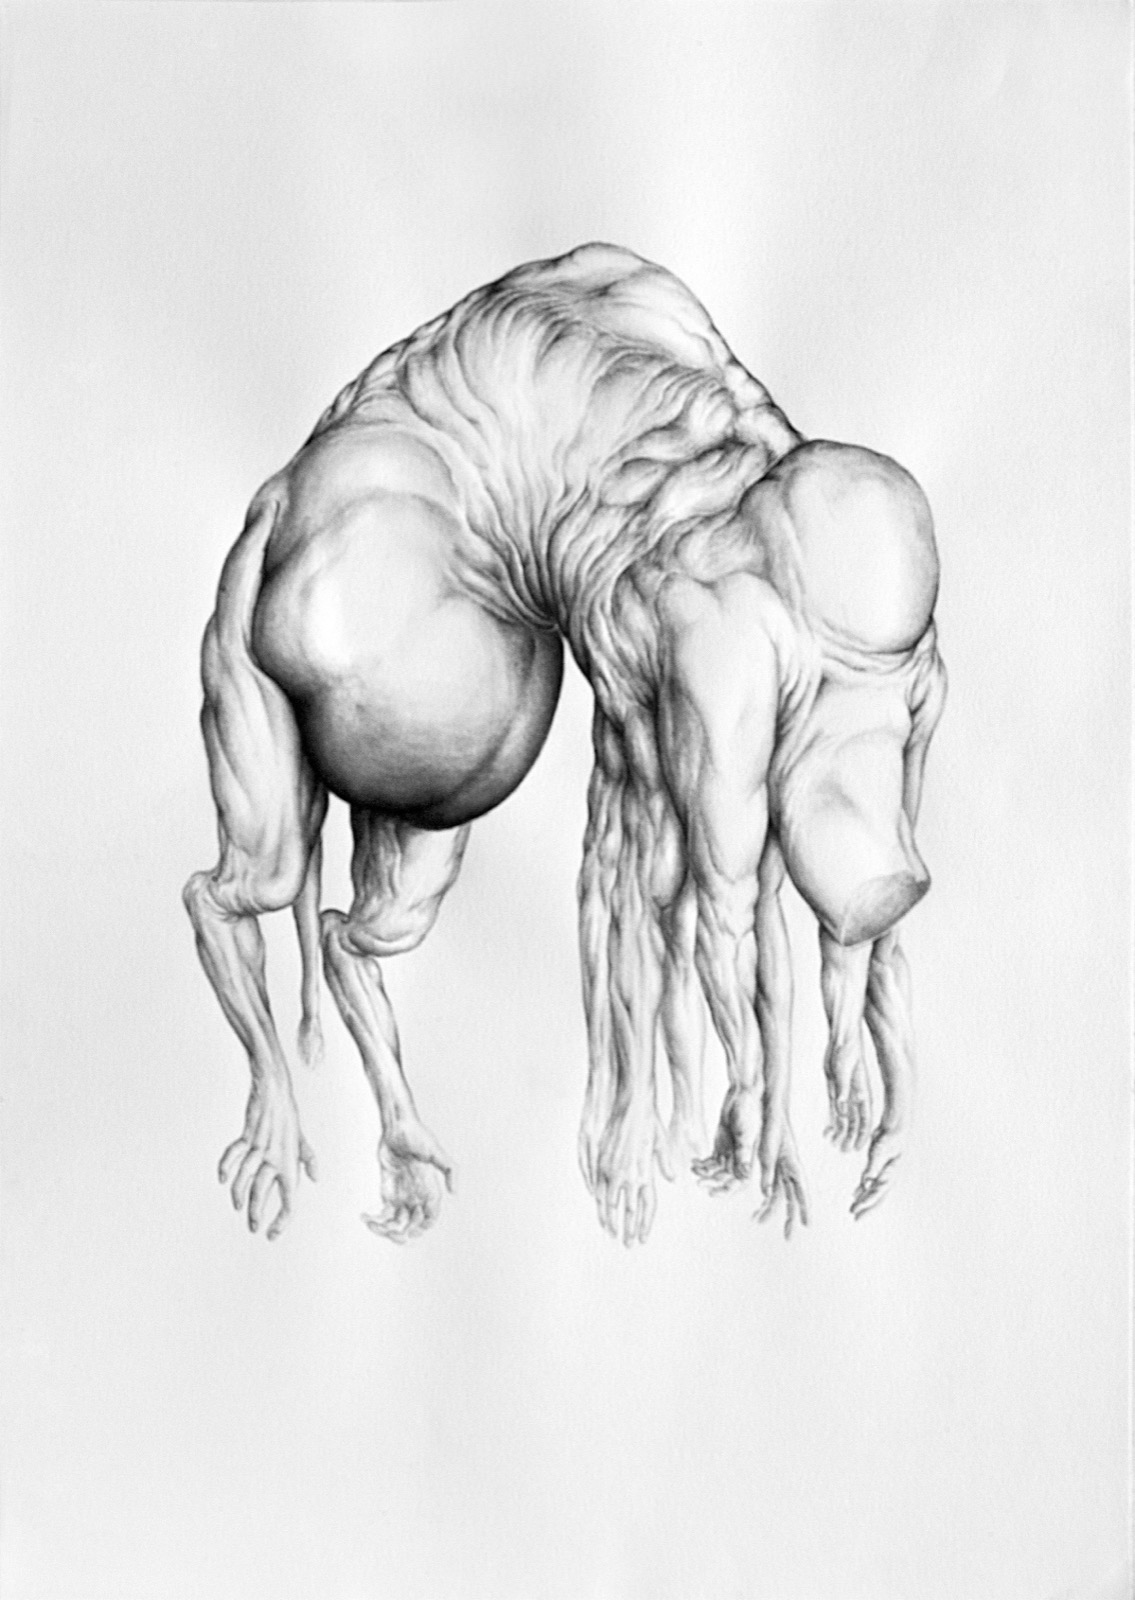 Planktonian People I, 2013, ink on paper, 16.5(h) x 23.25(w) inches